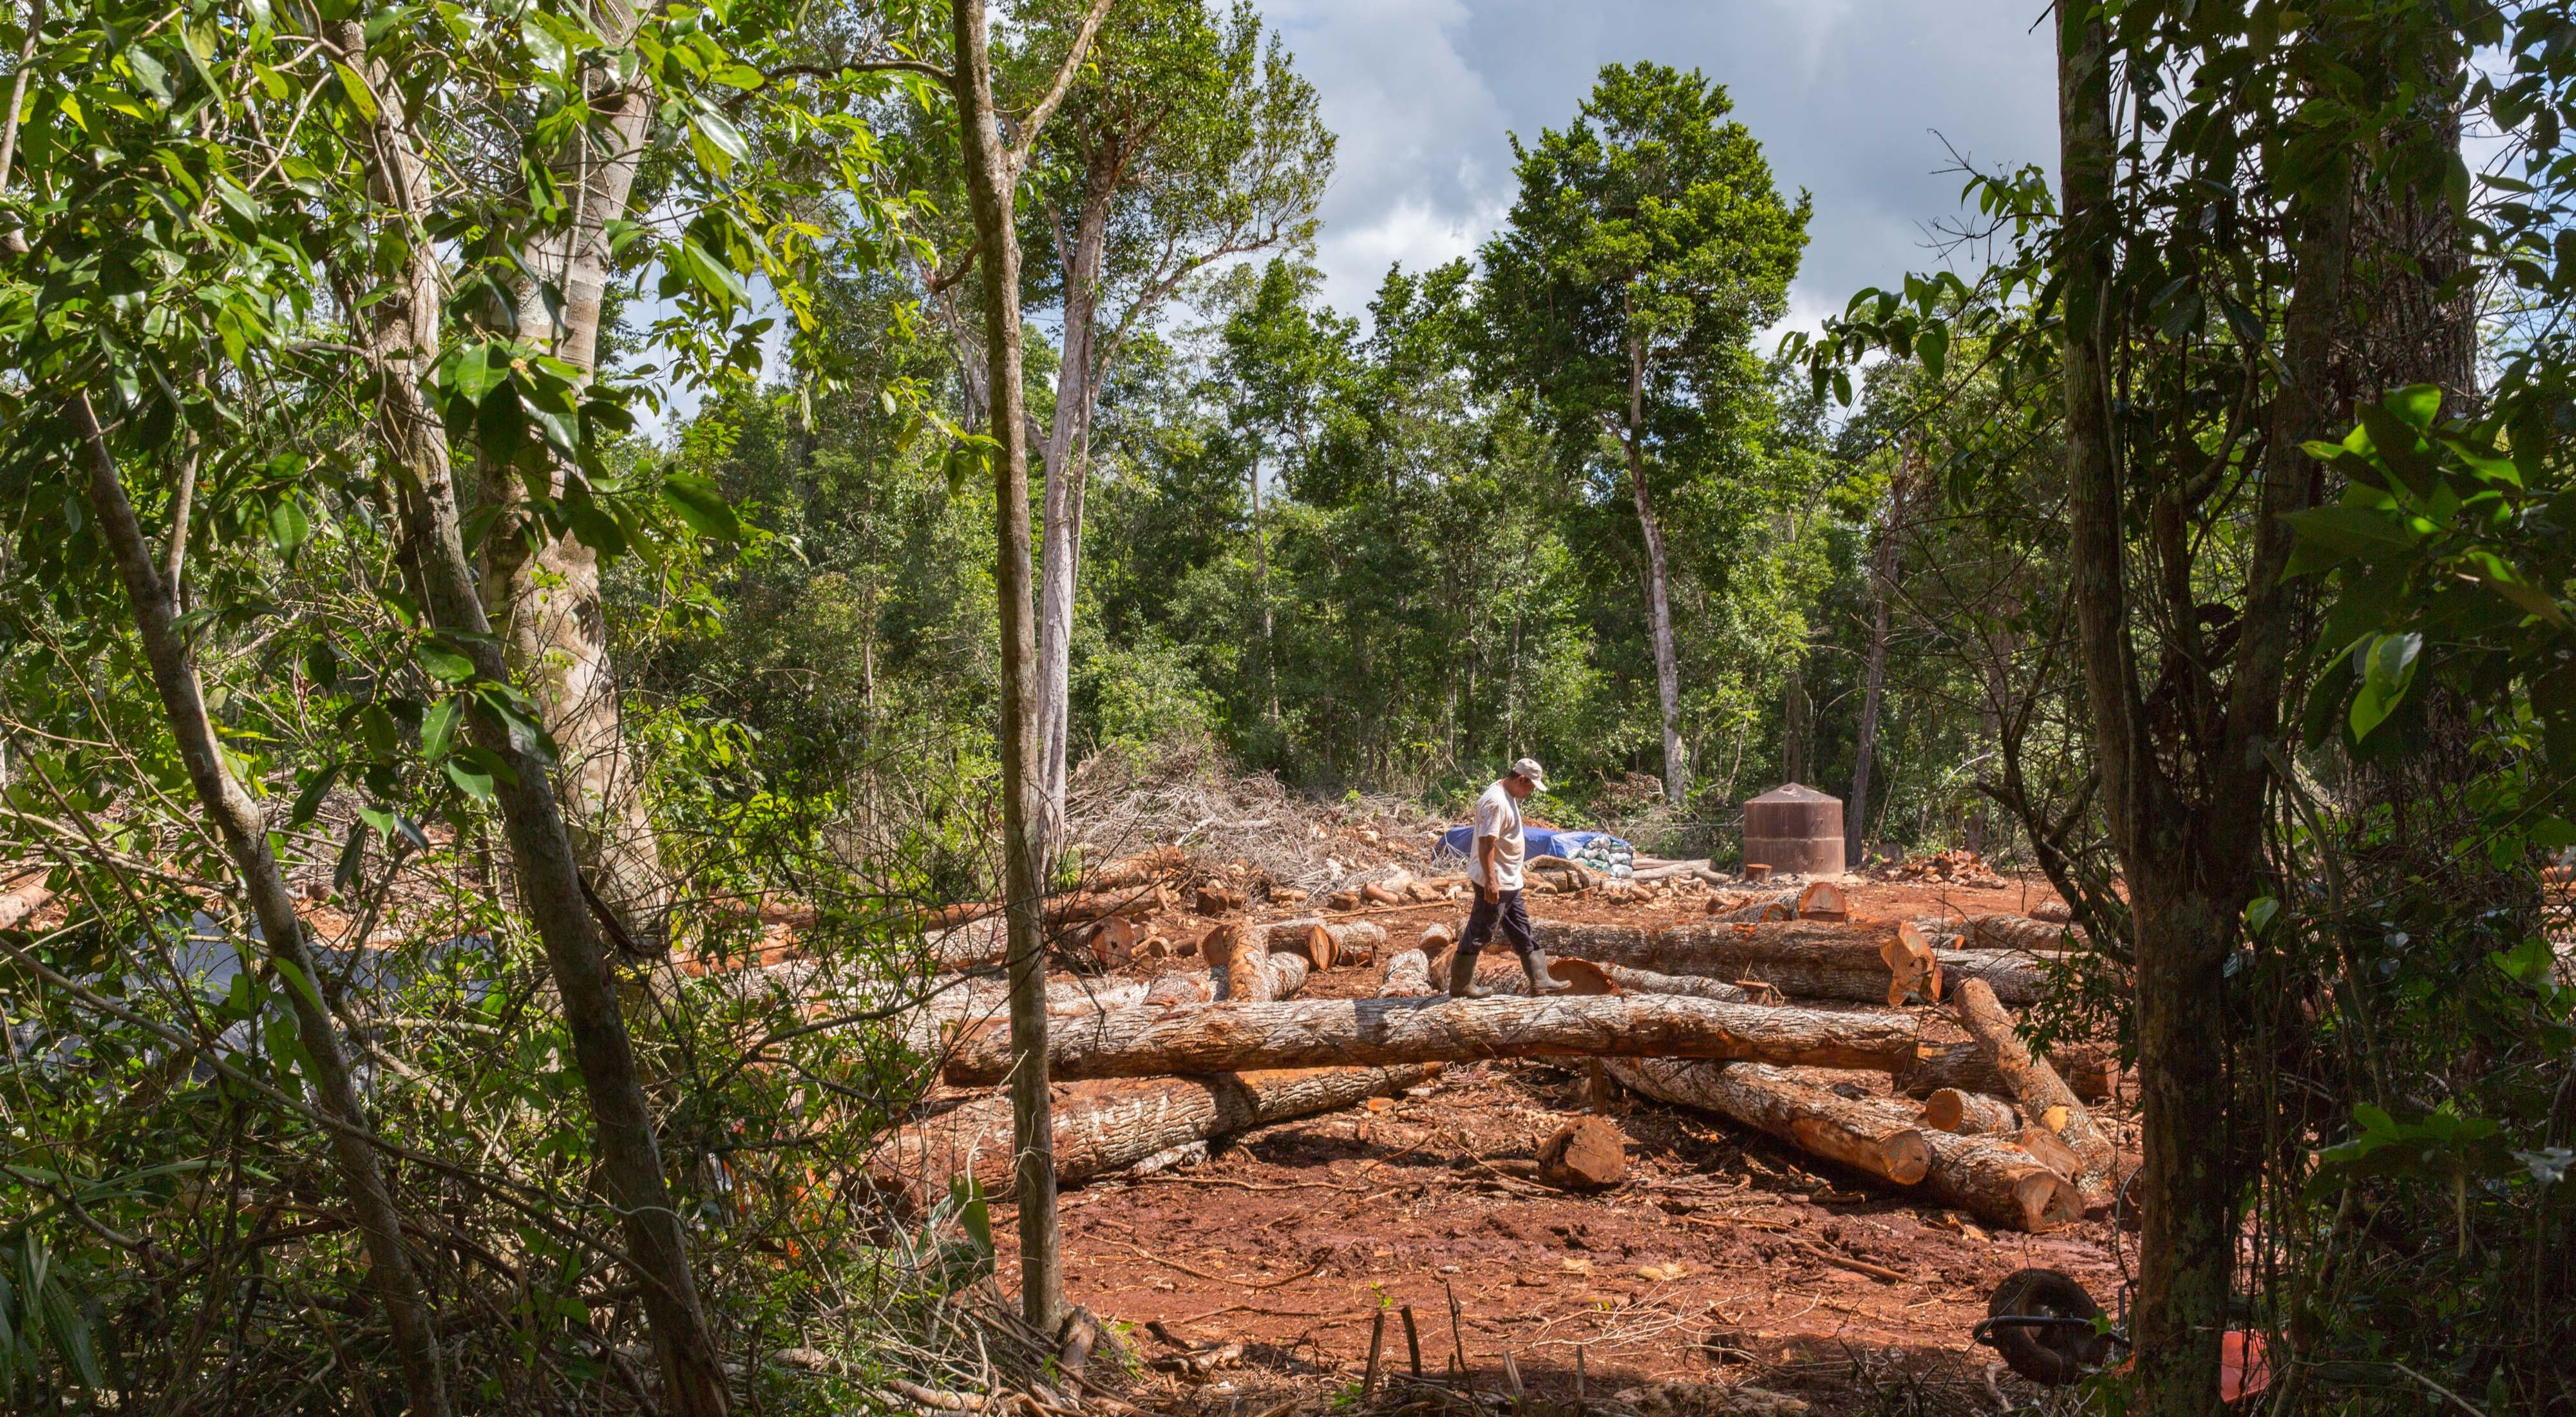 Manuel Reyes Estate walks the Chico Zapote logs waiting to be hauled off after being cut in the tropical rainforest of Noh Bec, Quintana Roo.